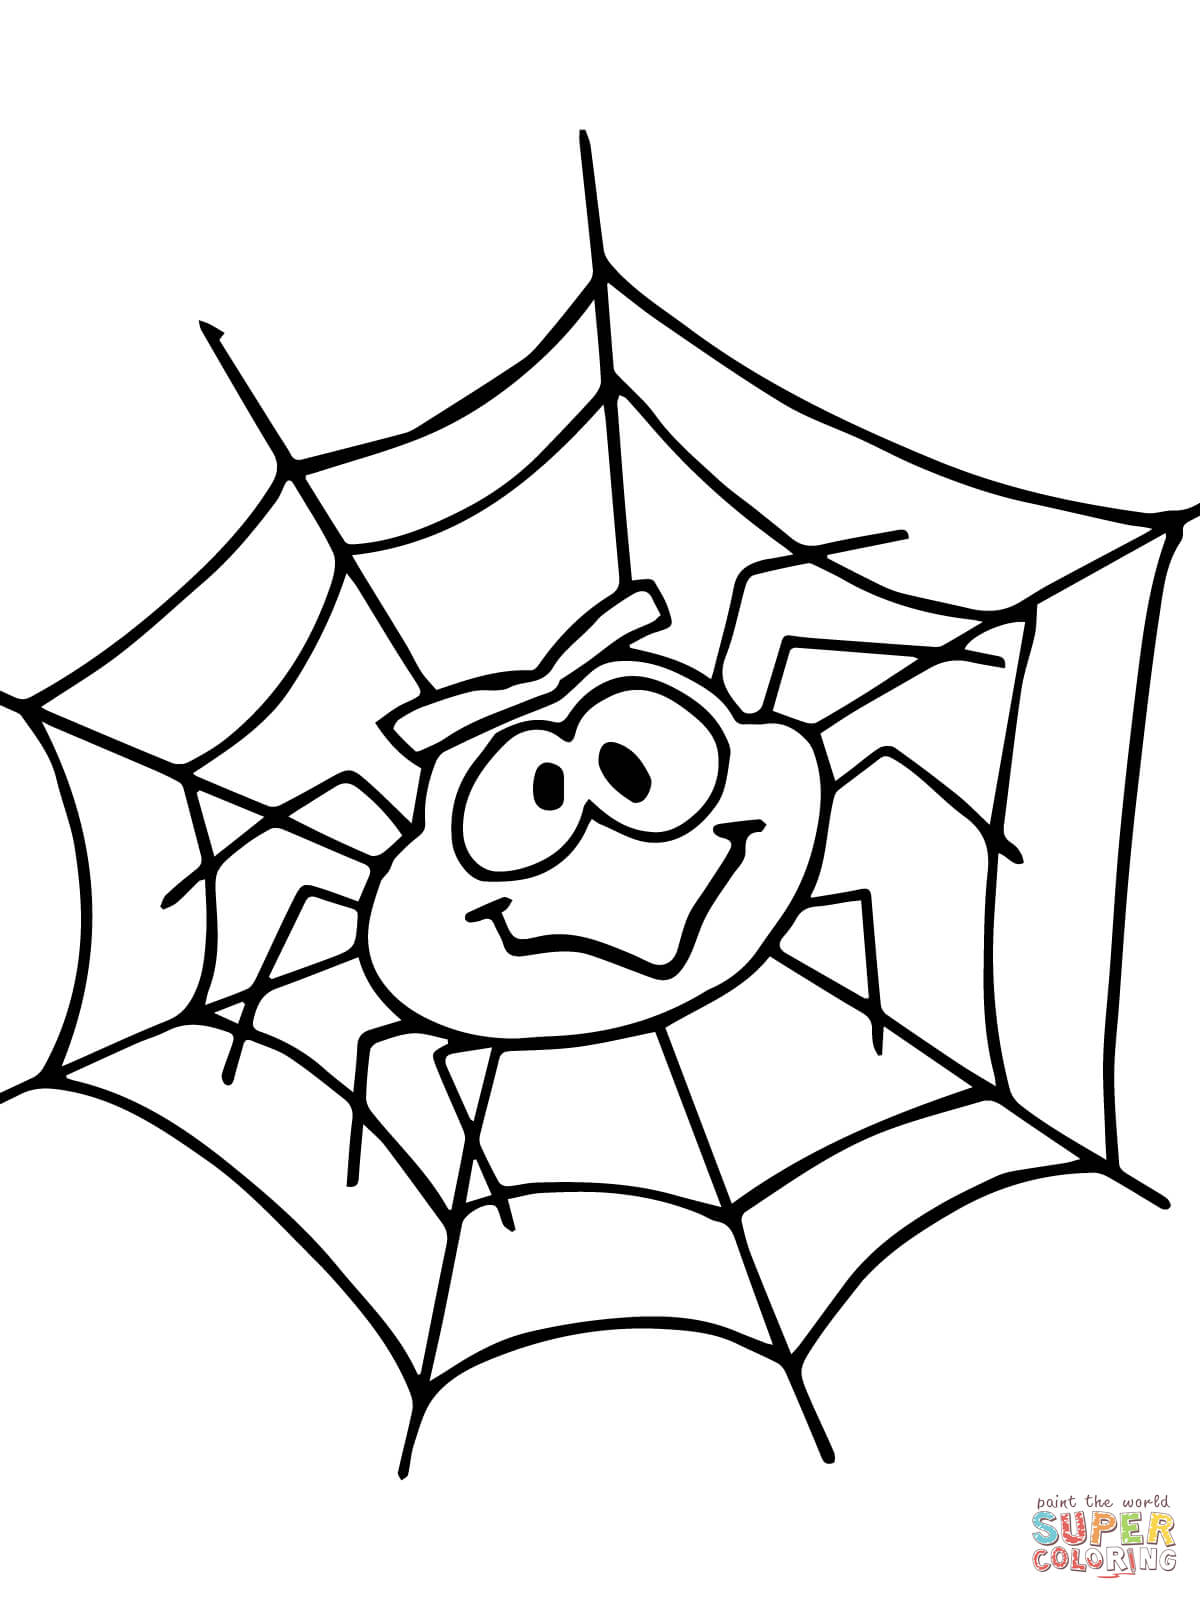 coloring page itsy bitsy spider itsy bitsy spider coloring page best of 45 itsy bitsy coloring spider page bitsy itsy